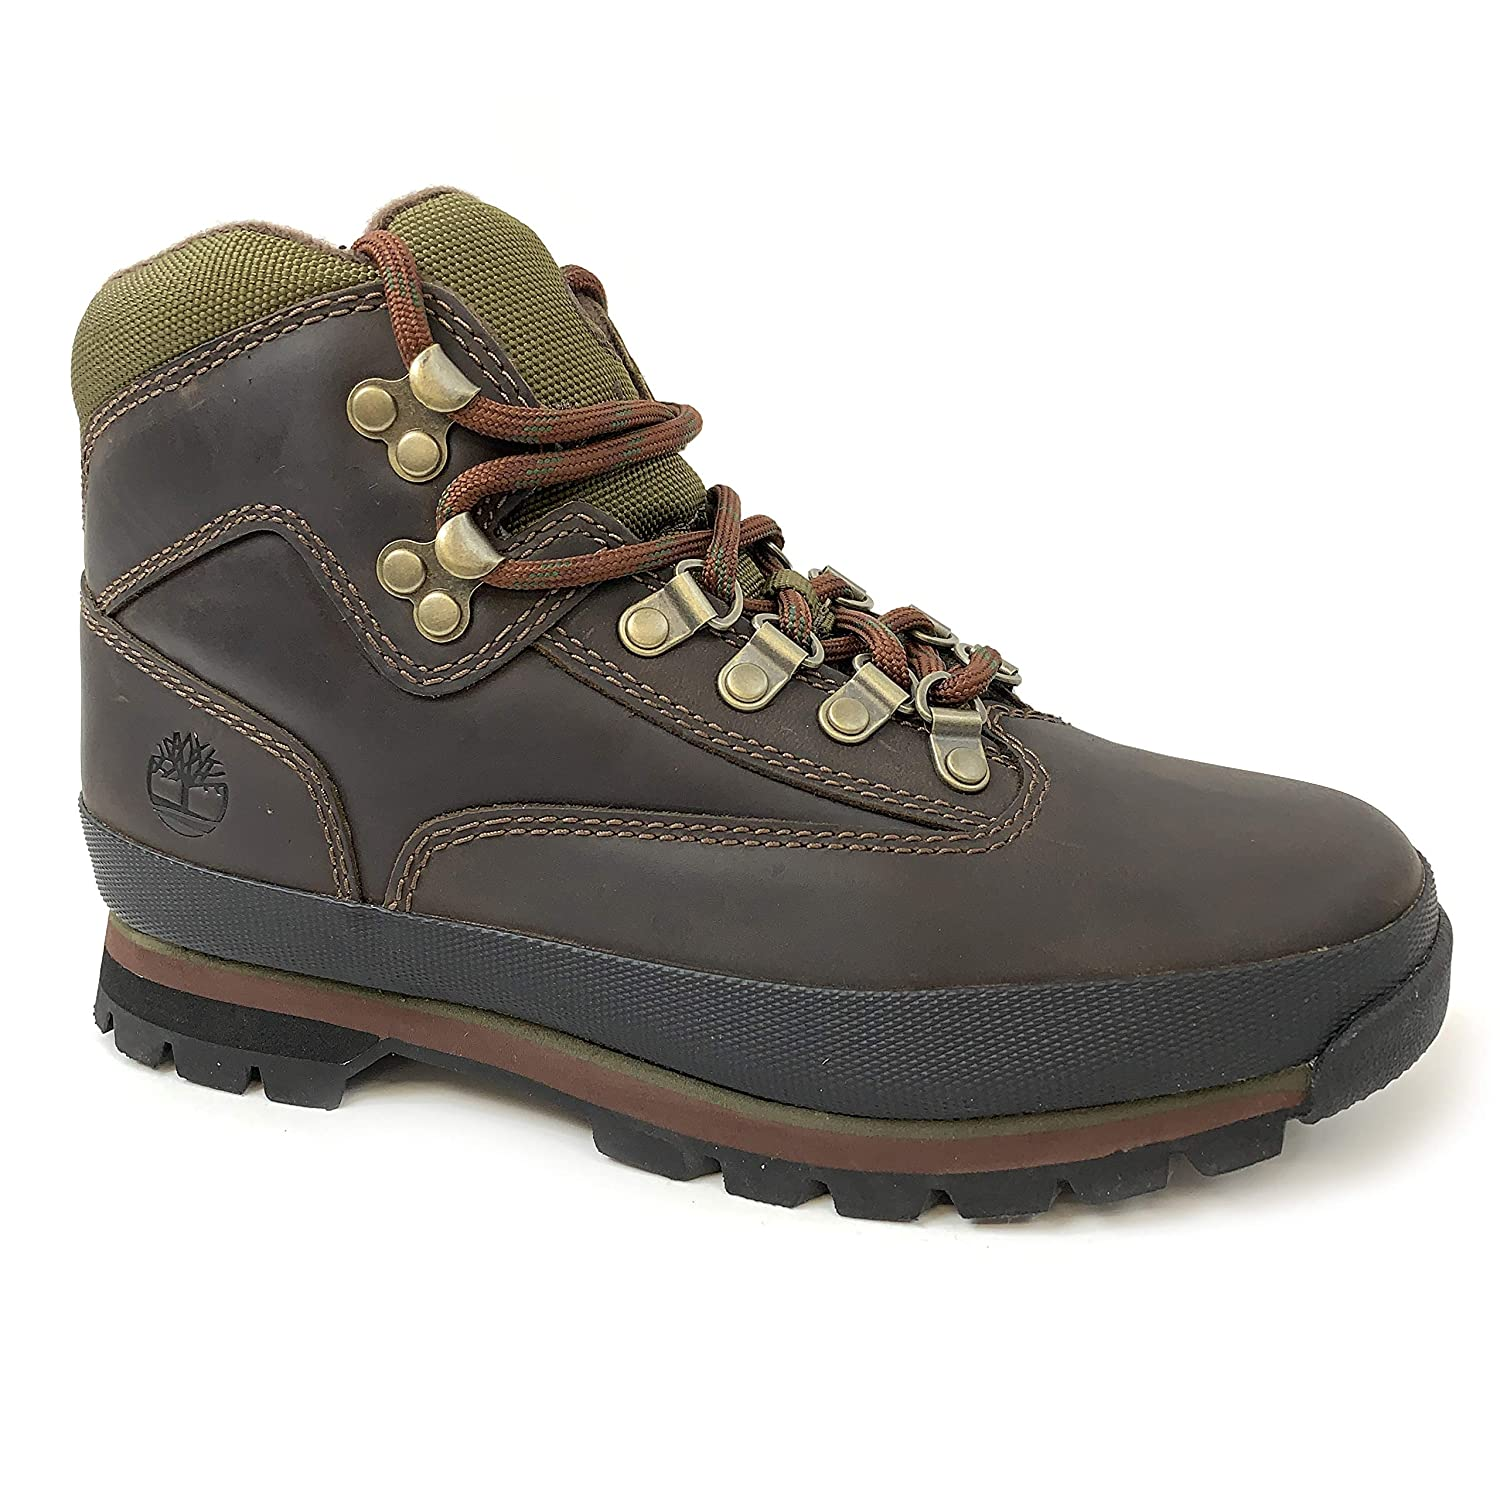 Timberland Euro Hiker Brown Leather Hiking Ankle Boots 95310